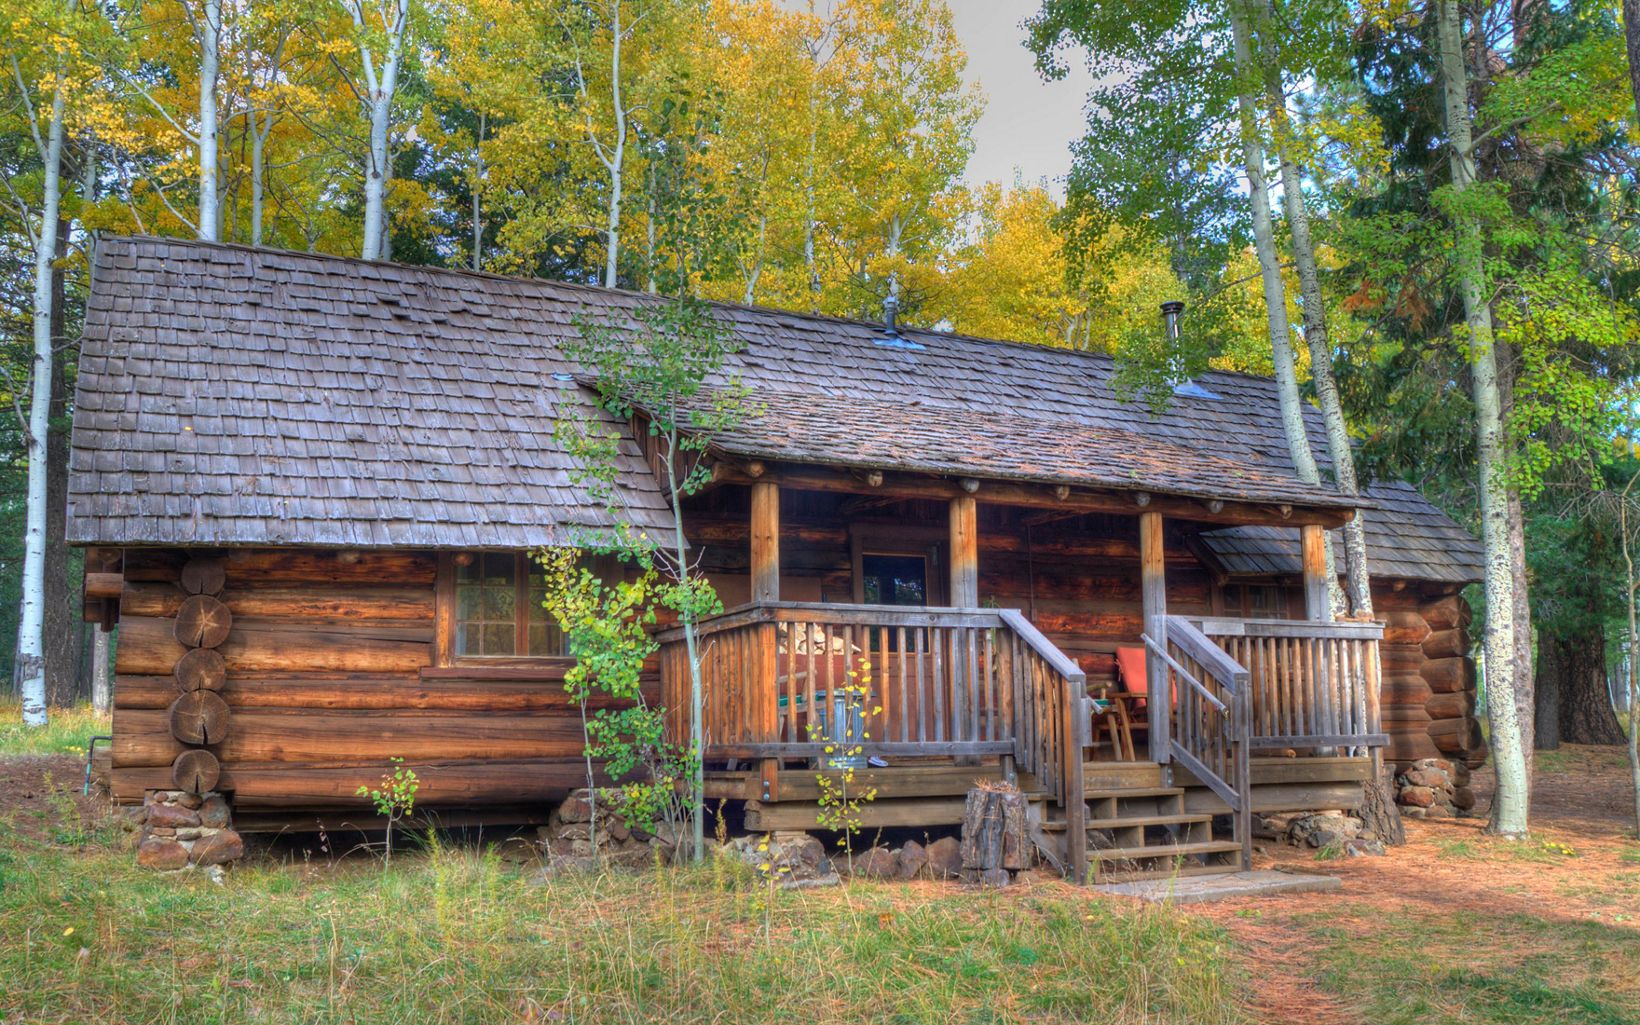 A rustic brown log cabin is surrounded by pine trees and birch trees with golden leaves.